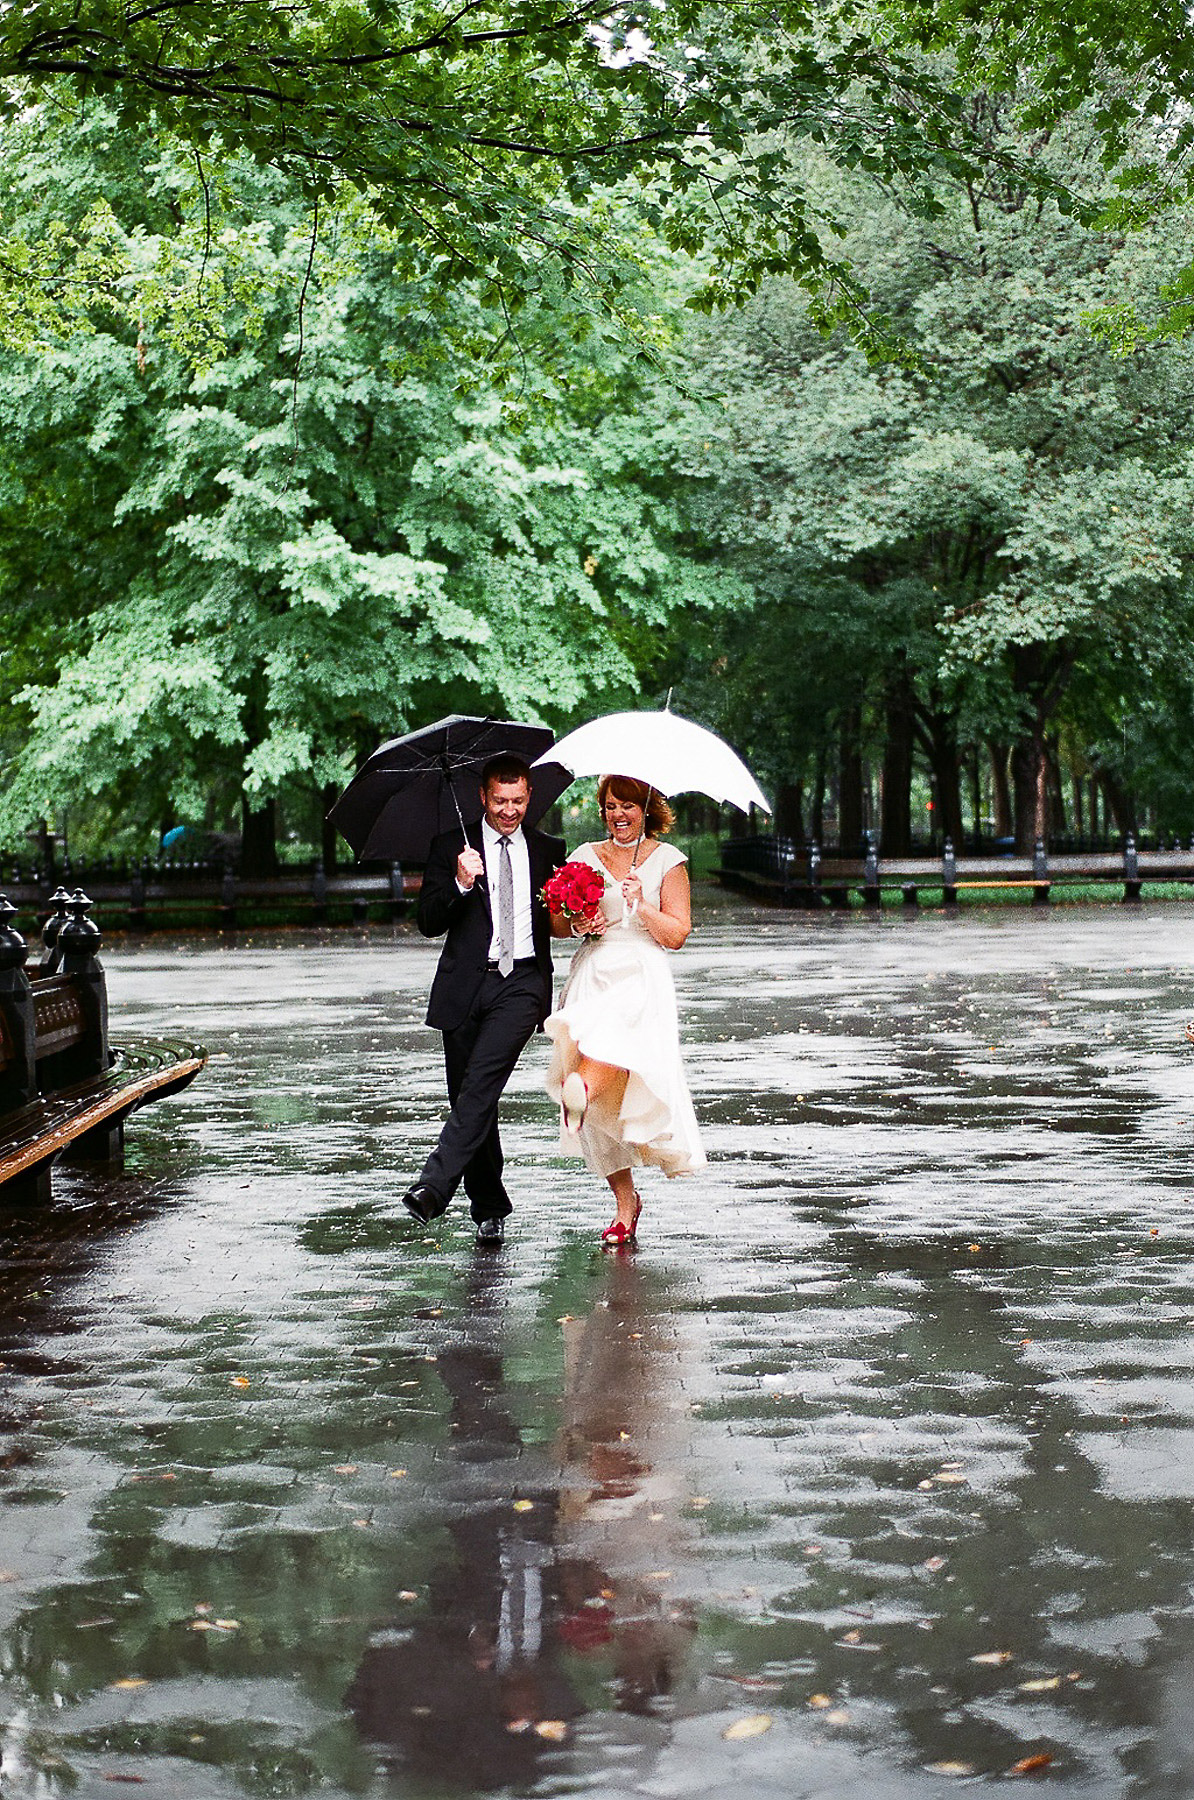 rainy day wedding elopement photos in central park by wendy g photography